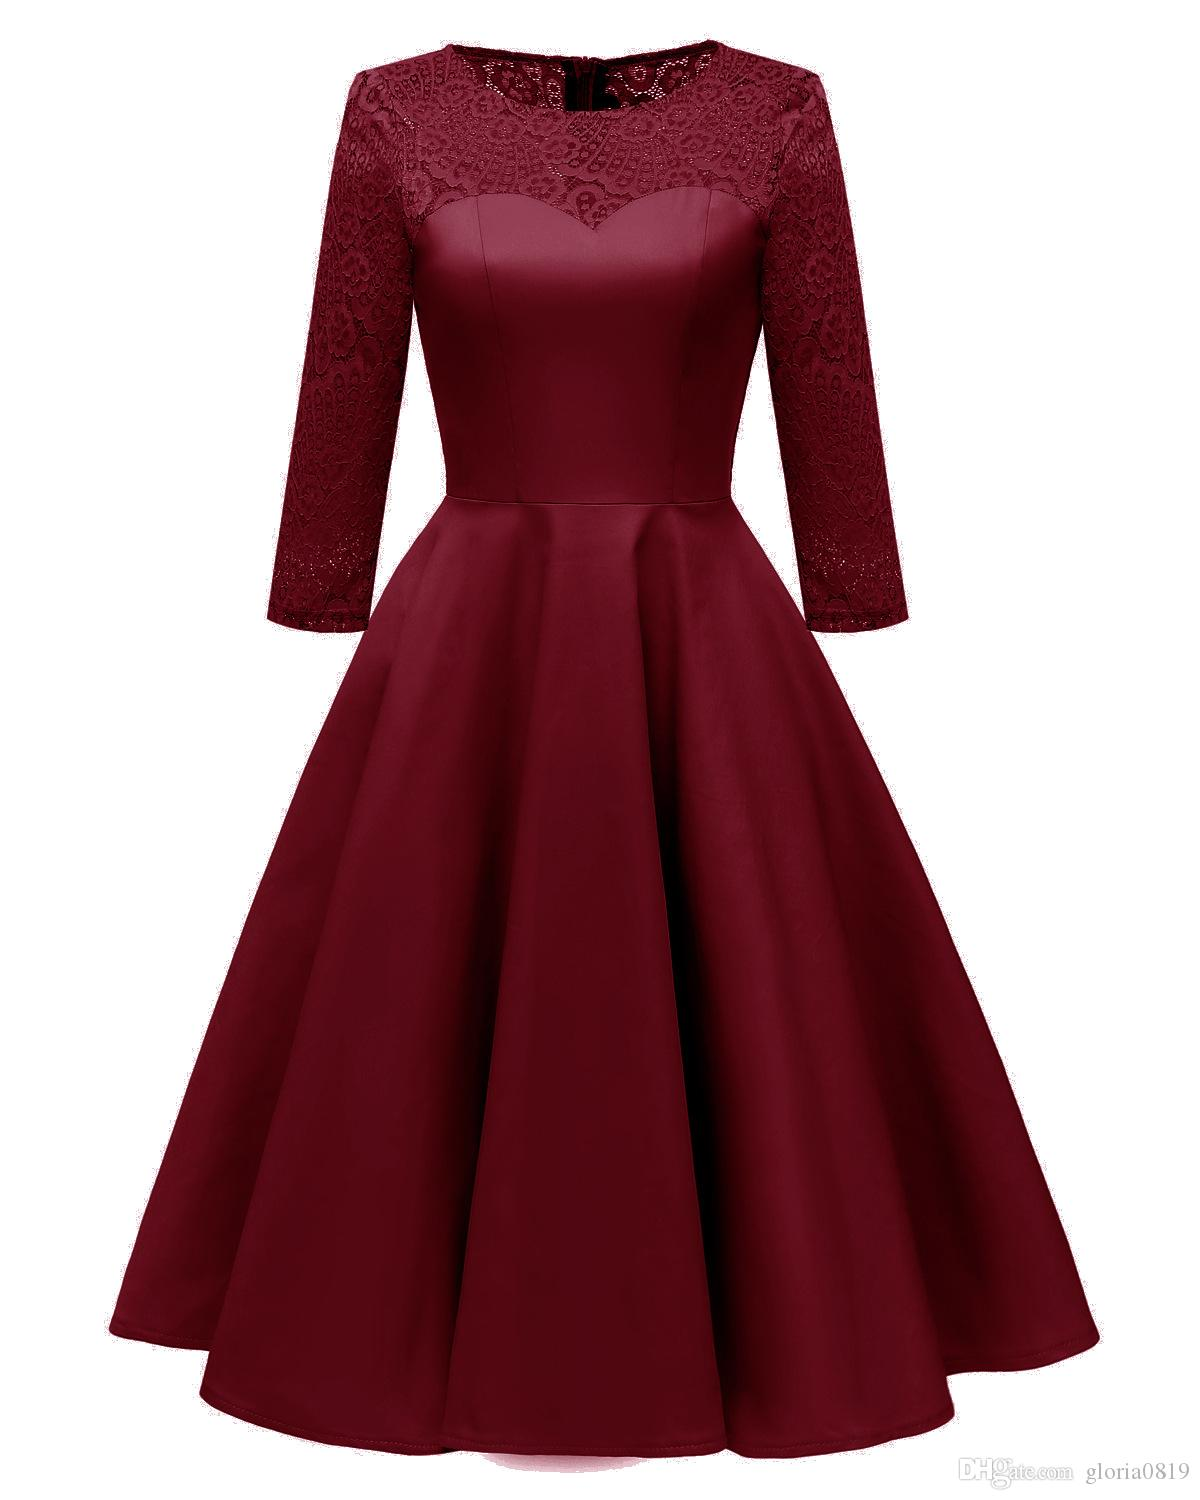 e8df51783e 2019 Vintage Lace Women Dresses Burgundy Jewel Neck Three Quarter Sleeves  Skater Dresses For Prom Party Holiday Short Midi Gowns From Gloria0819